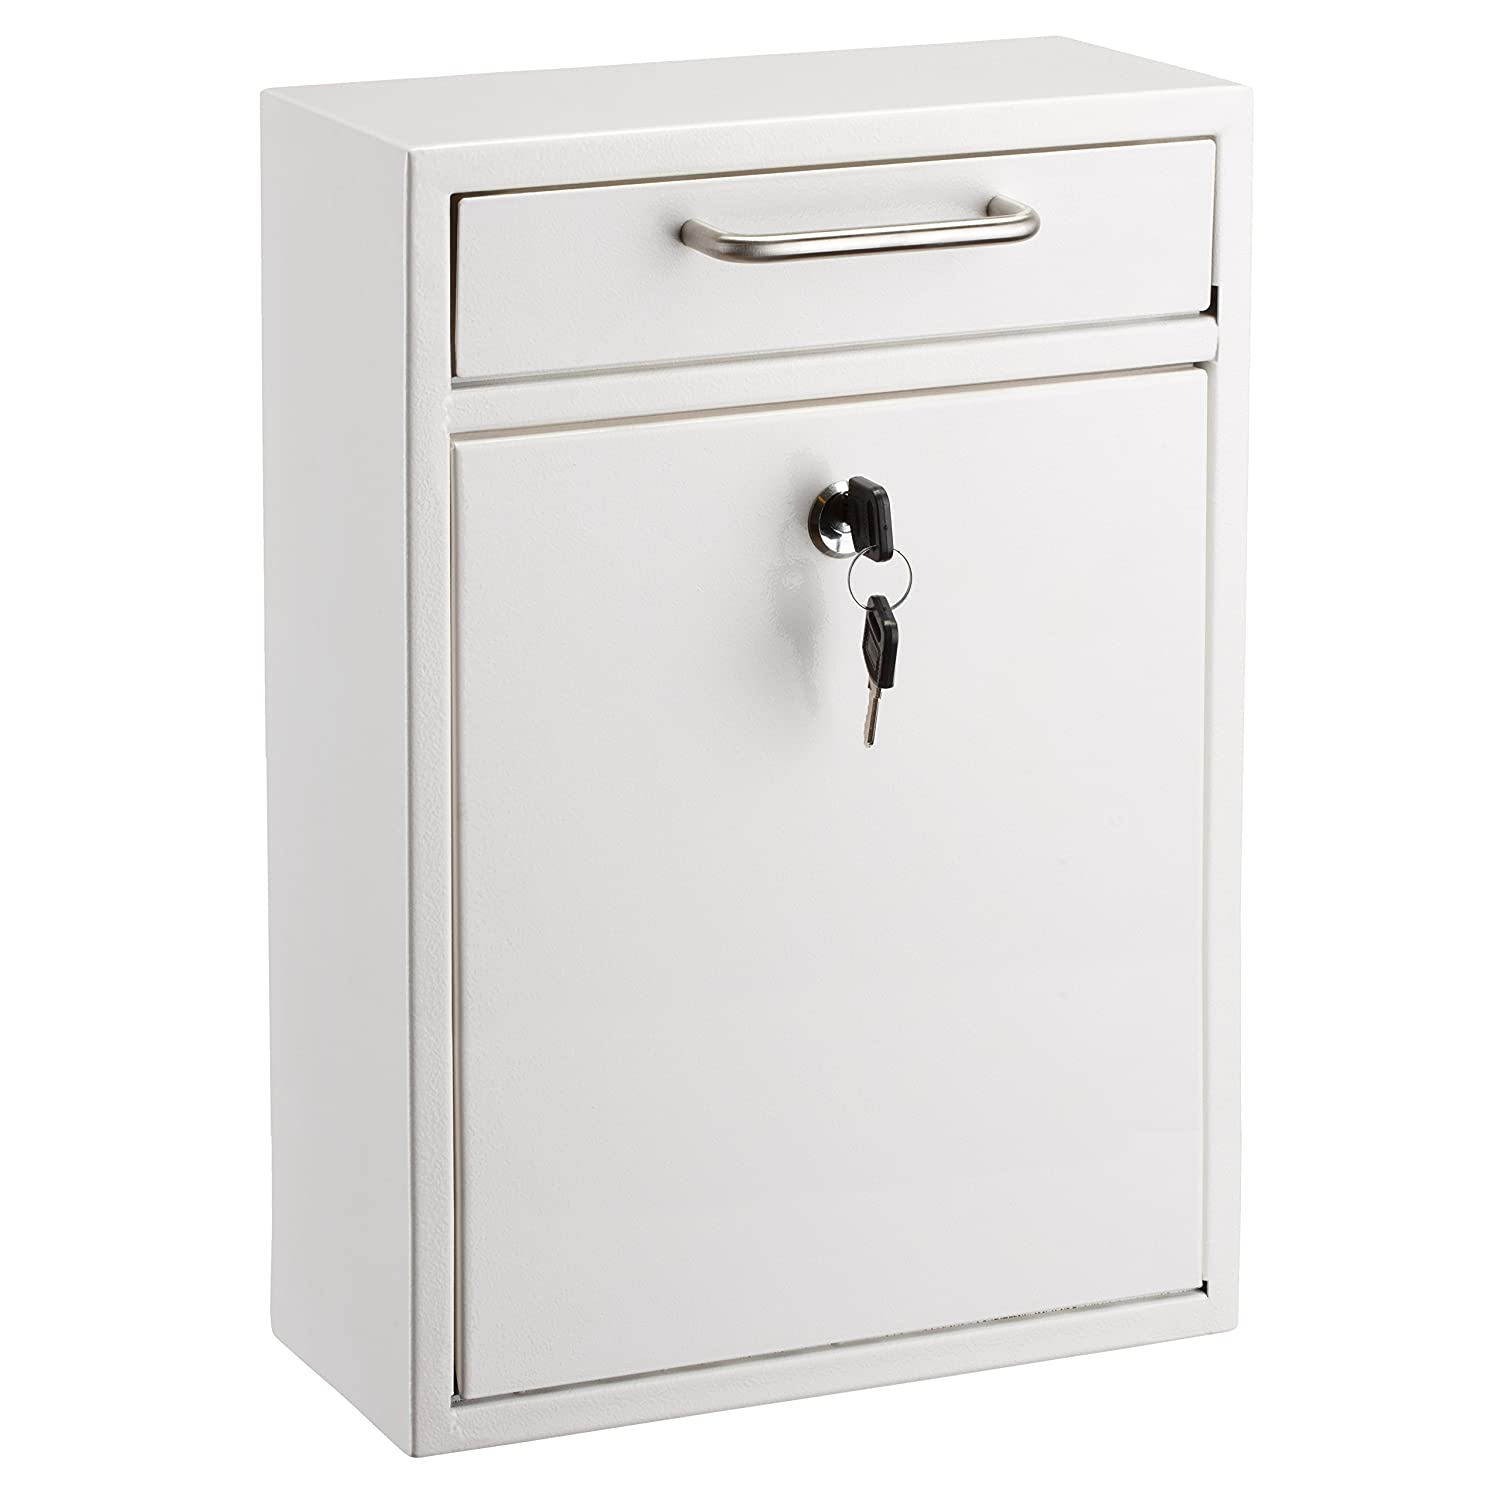 Adiroffice Locking White Large Steel Drop Box Wall Mounted. 5 Round Table. Cheap Pool Tables For Sale. Stability Ball Desk Chair. Desk Chair Combo. Front Desk Hotel Jobs. Vesa Mount Desk. Desk Jet 3510. Amish Desk With Hutch